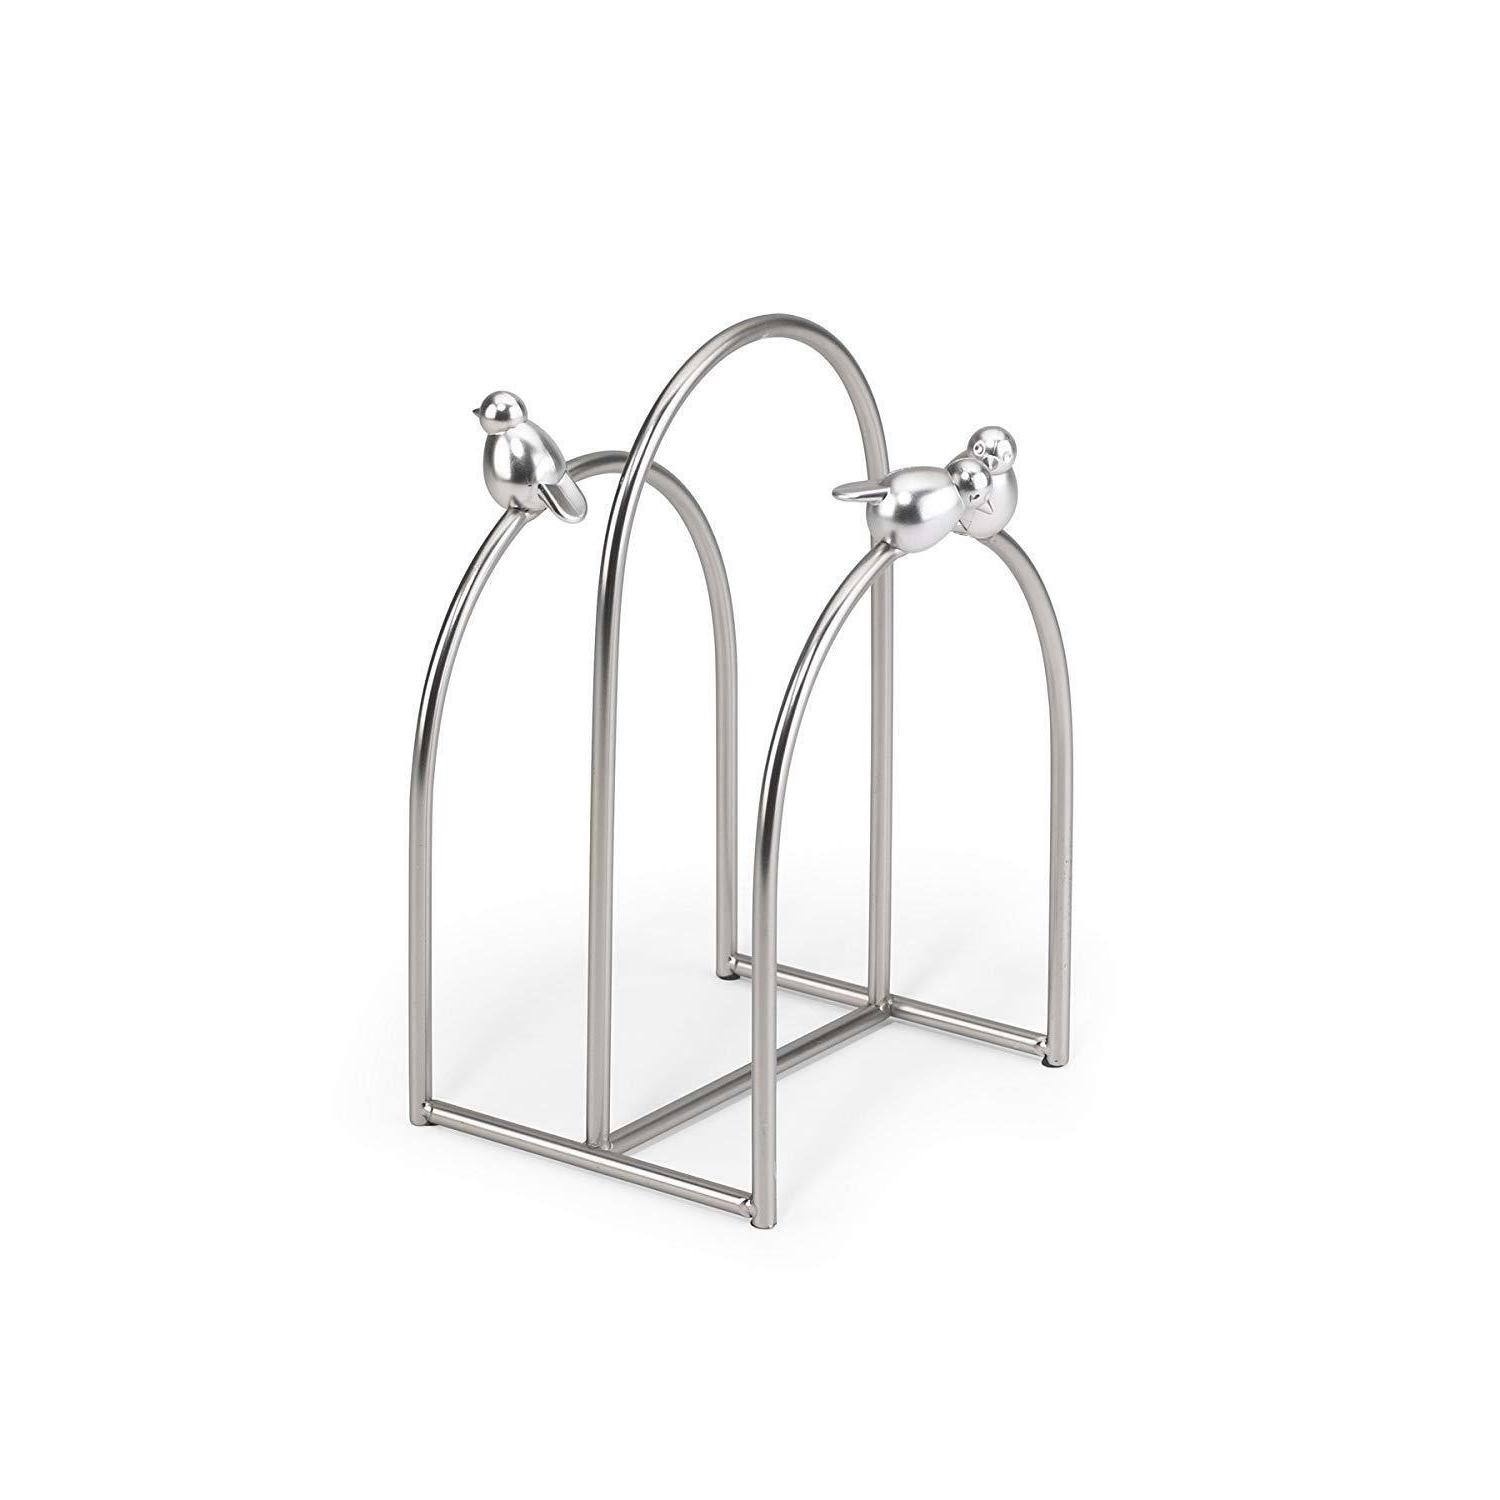 NWT 330004-410 Chirp Metal Holder, by 4-3/4 by 4-3/4-Inch